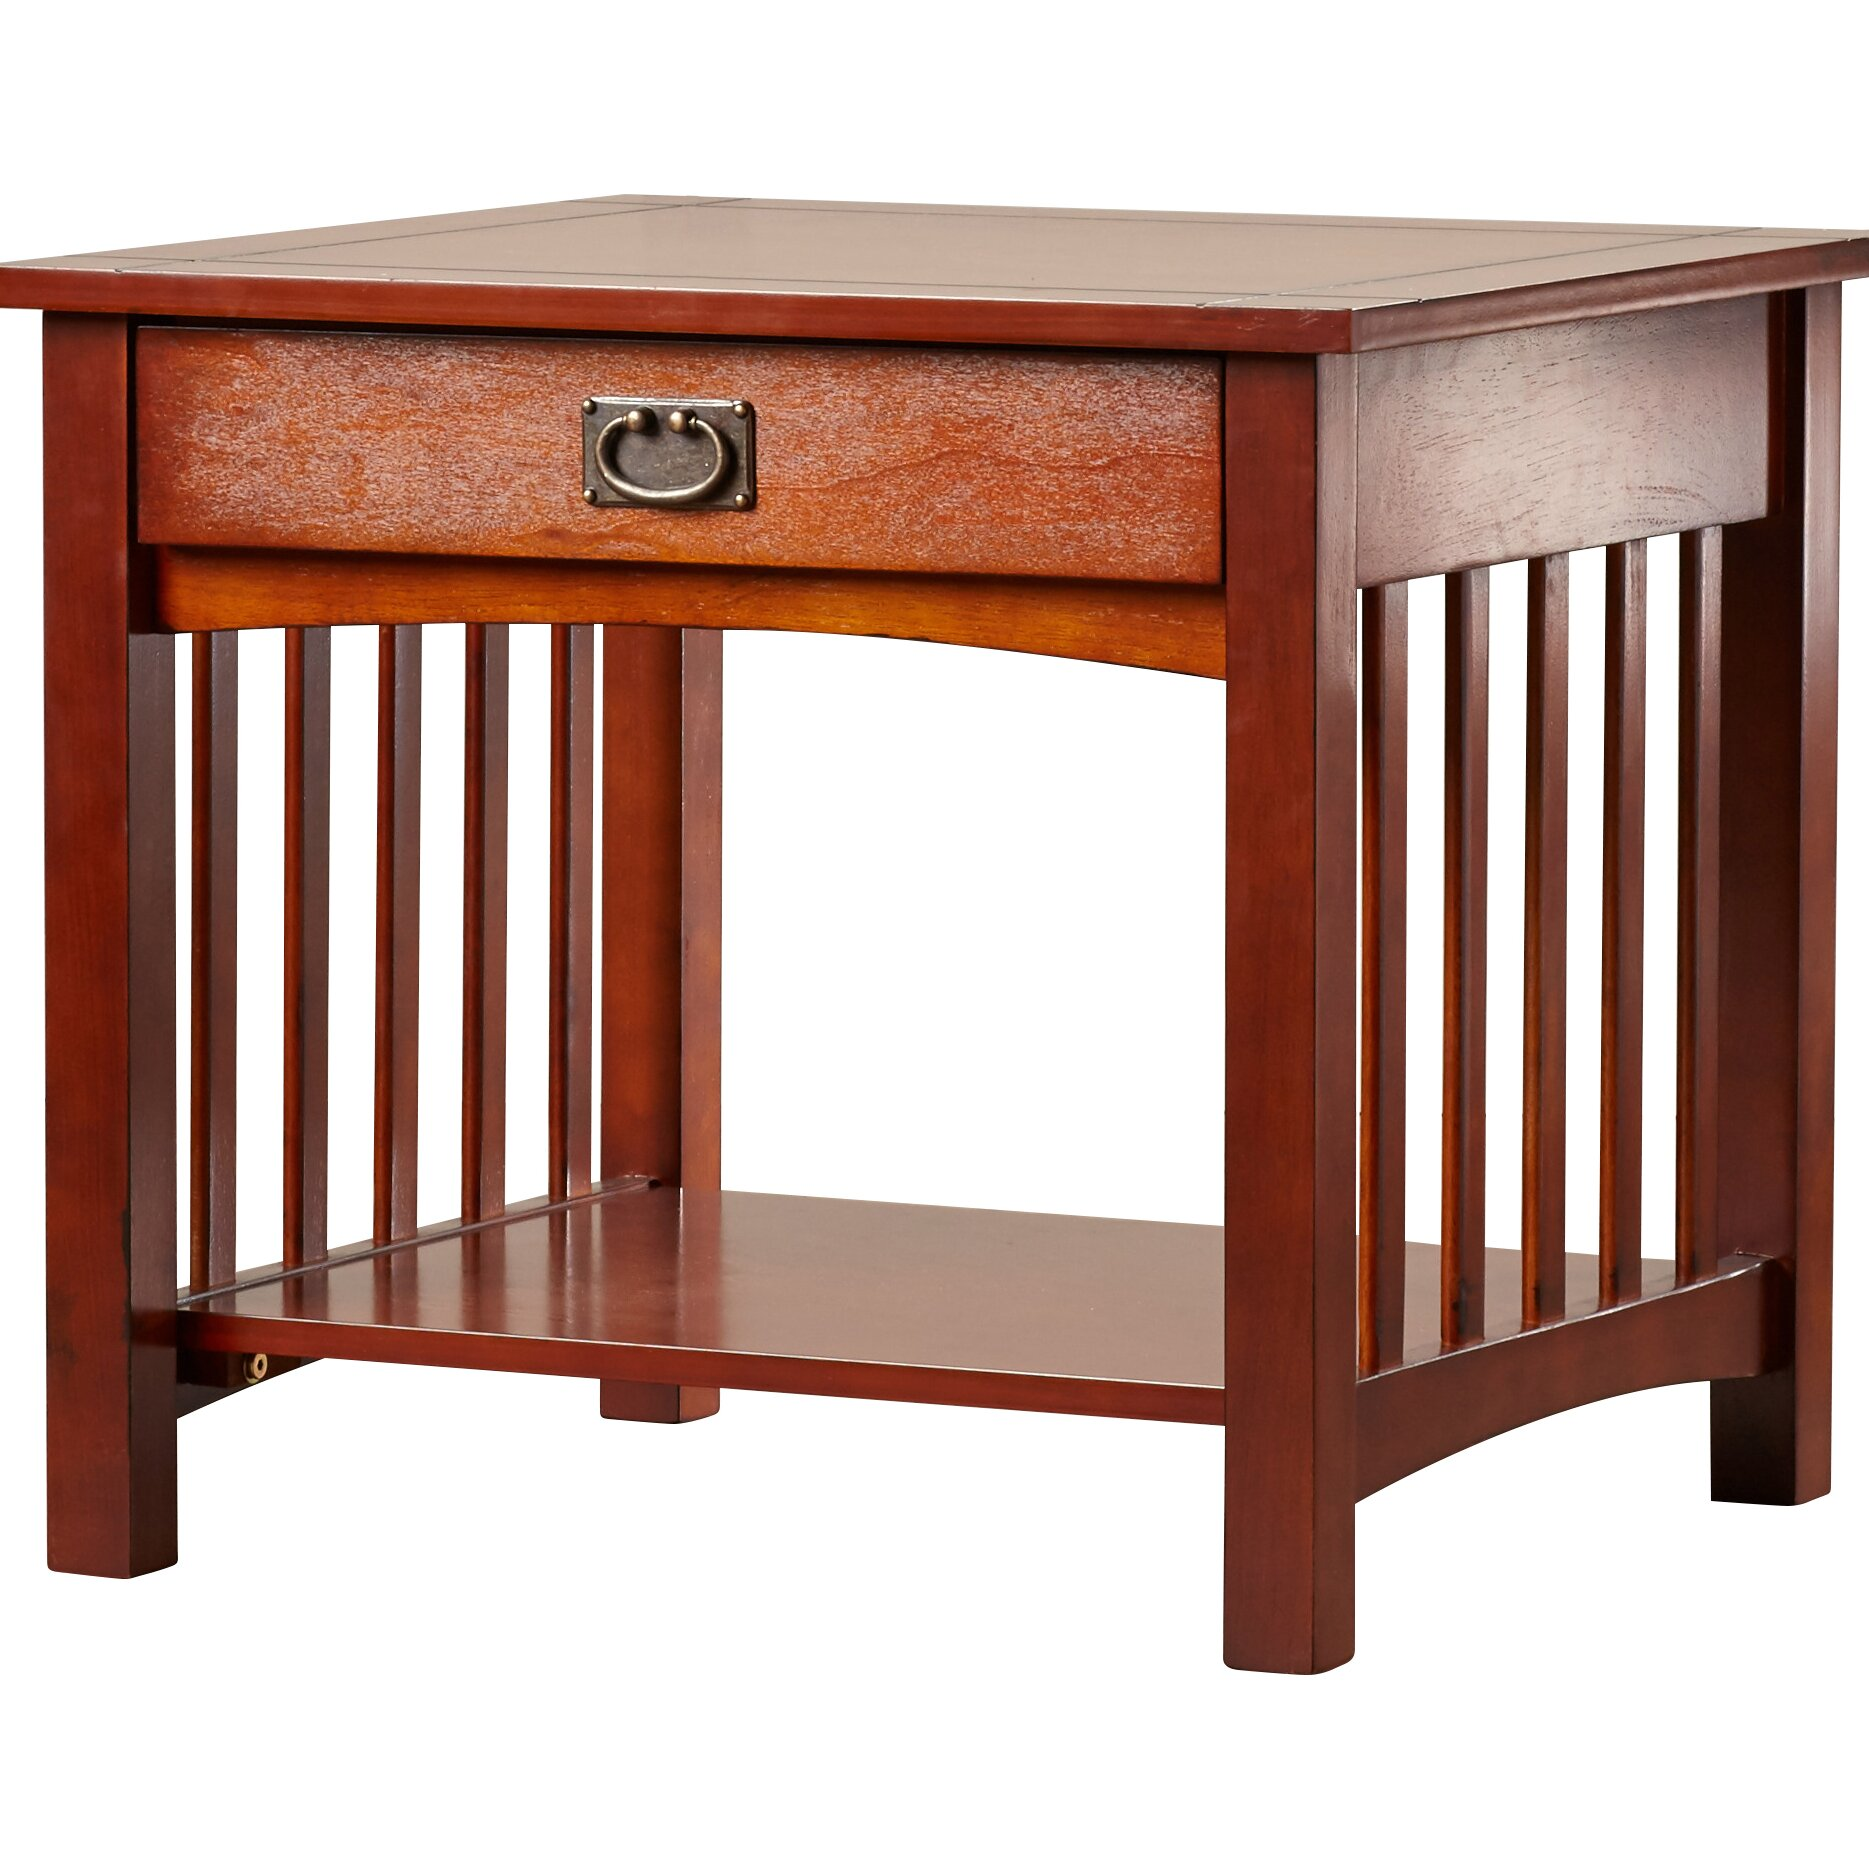 darby home co harvel 3 piece coffee table set reviews wayfair. Black Bedroom Furniture Sets. Home Design Ideas